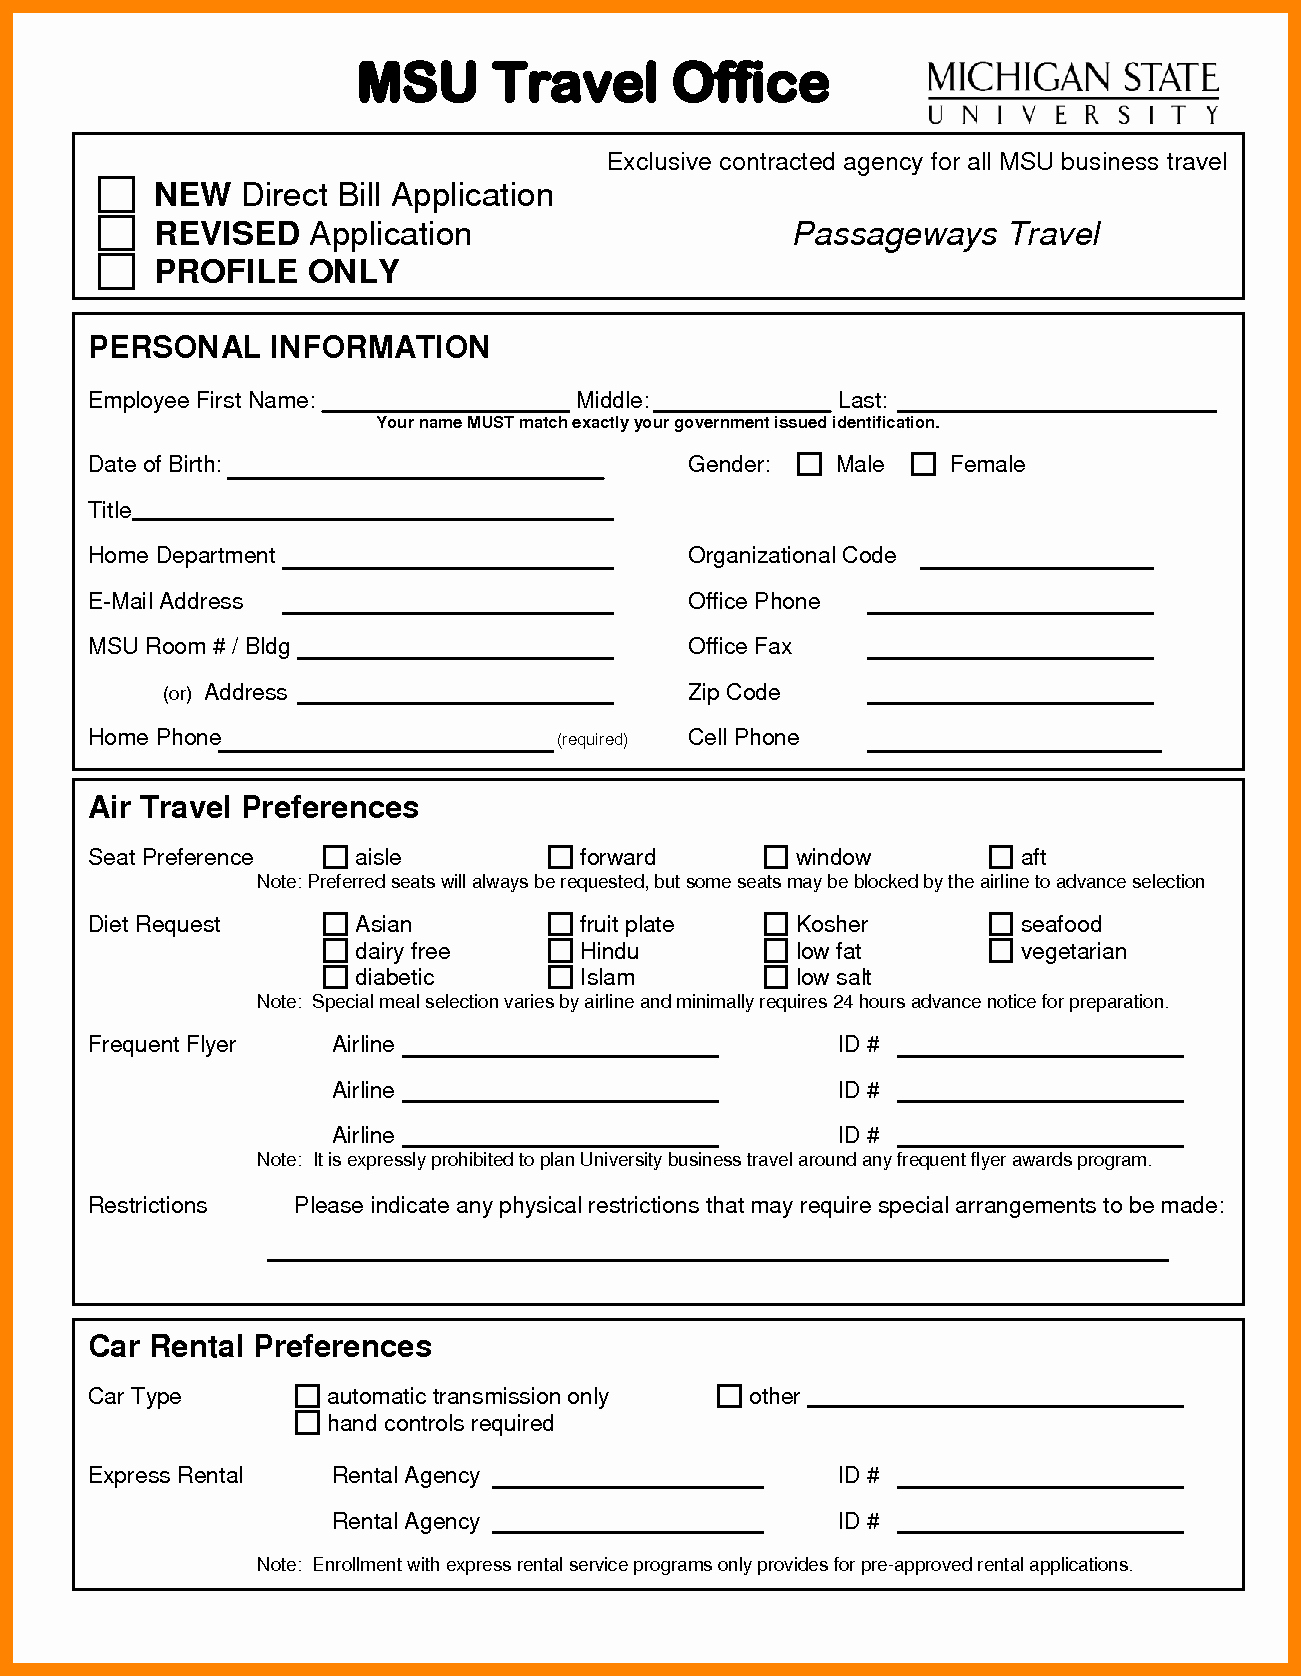 Physical Therapy Invoice Template Of  Car Travels Bill Format With Physical Therapy Invoice Template